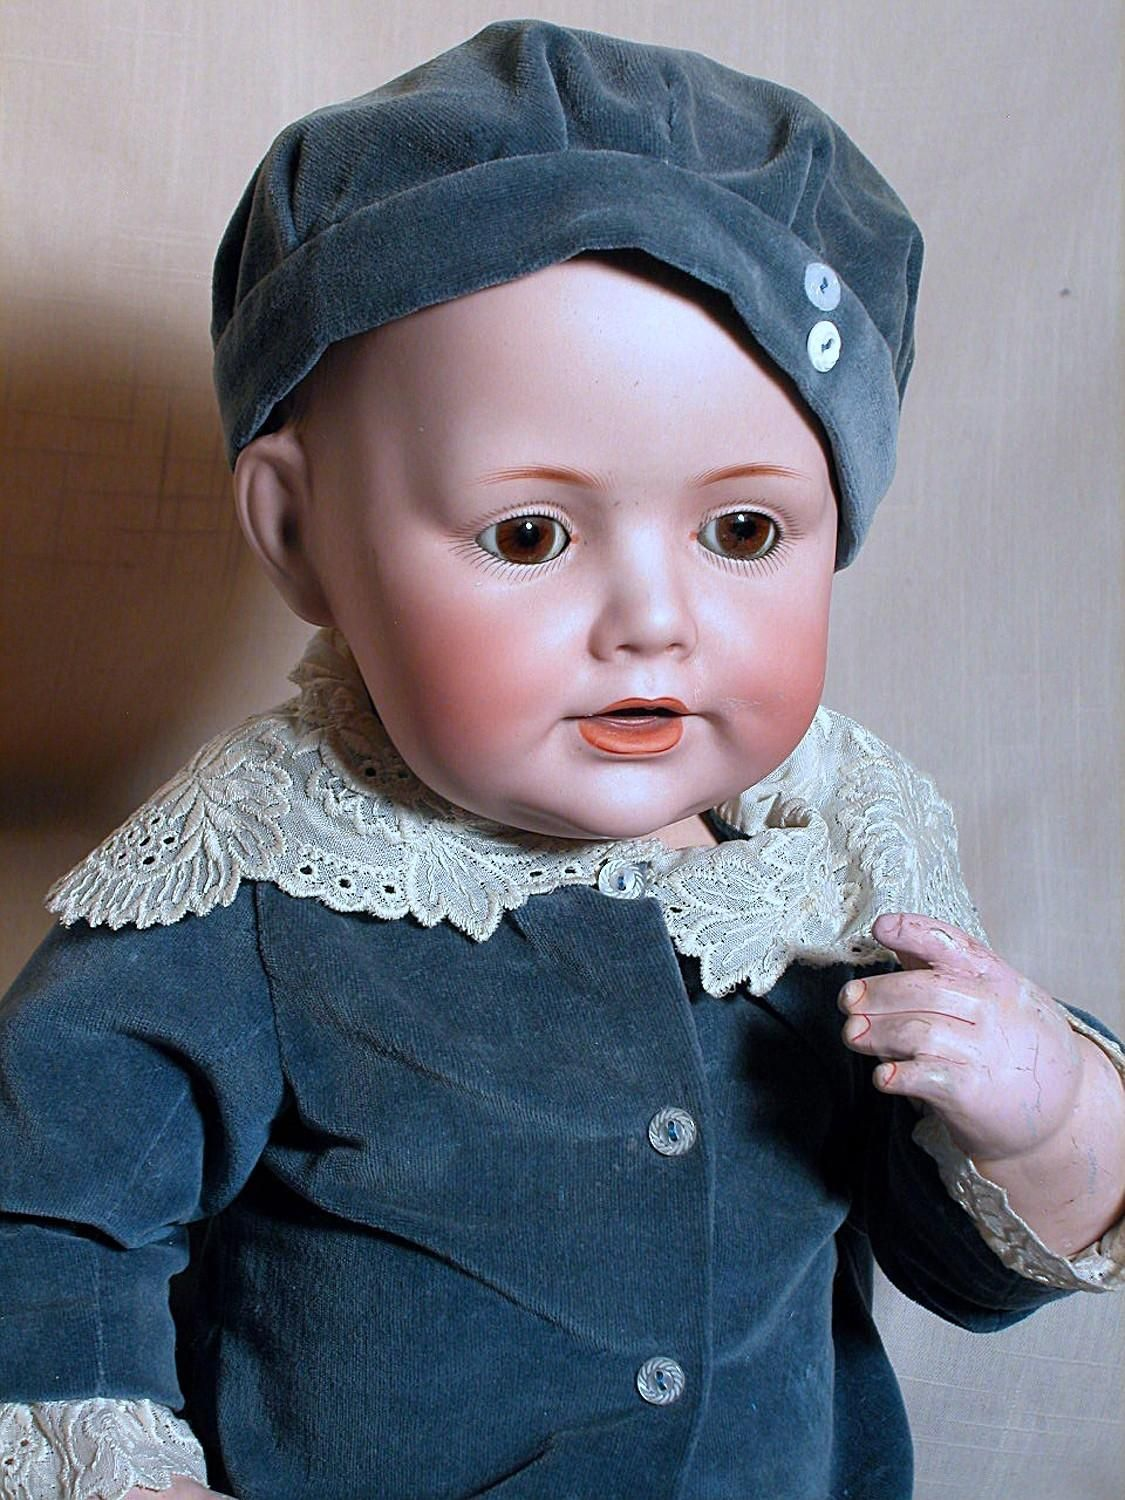 german kestner character doll baby jean bisque head composition baby